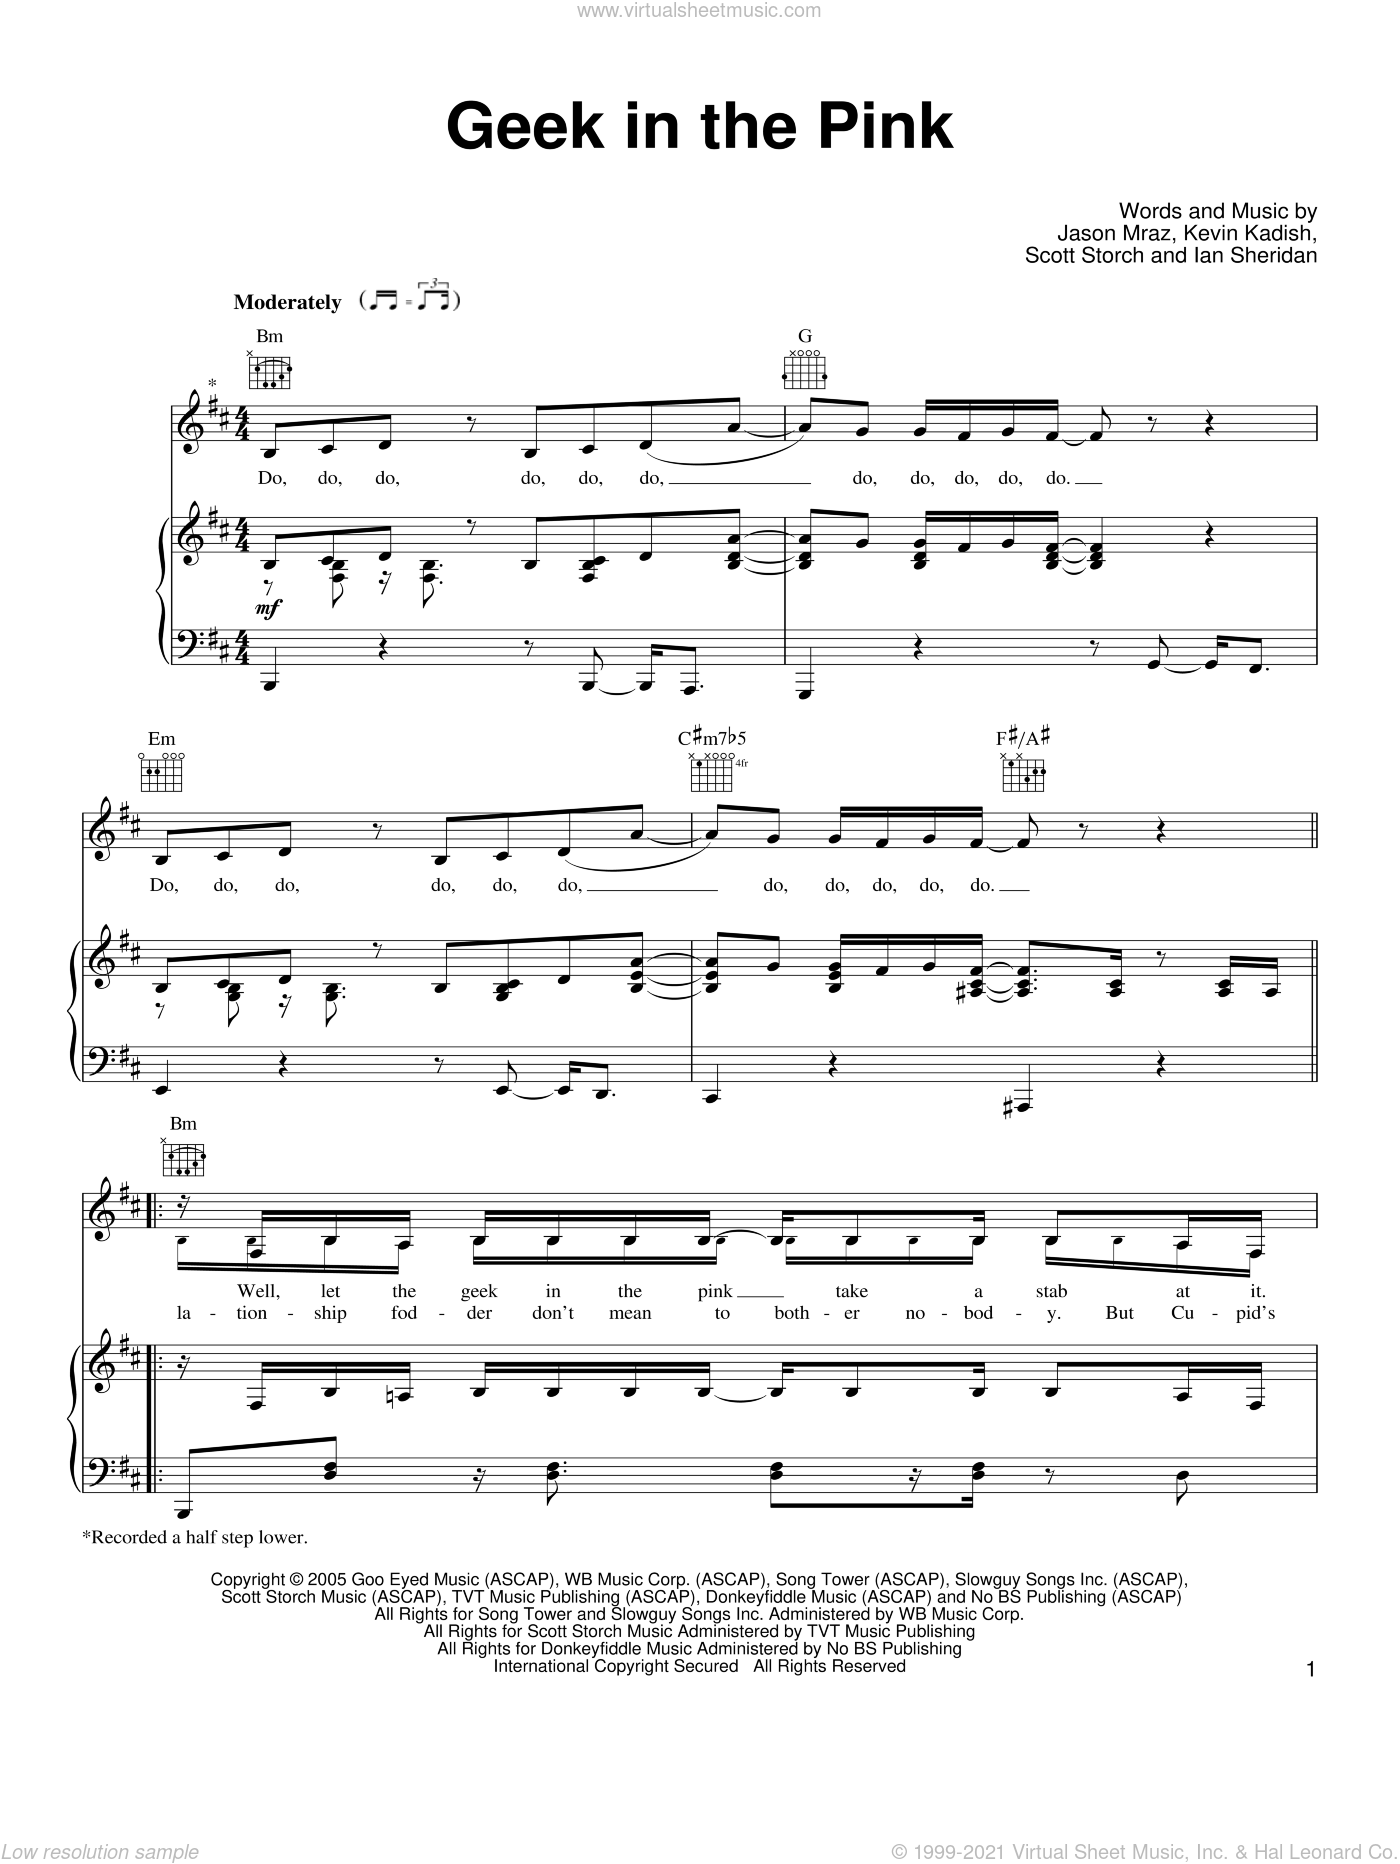 Geek In The Pink sheet music for voice, piano or guitar by Jason Mraz, Ian Sheridan, Kevin Kadish and Scott Storch, intermediate skill level